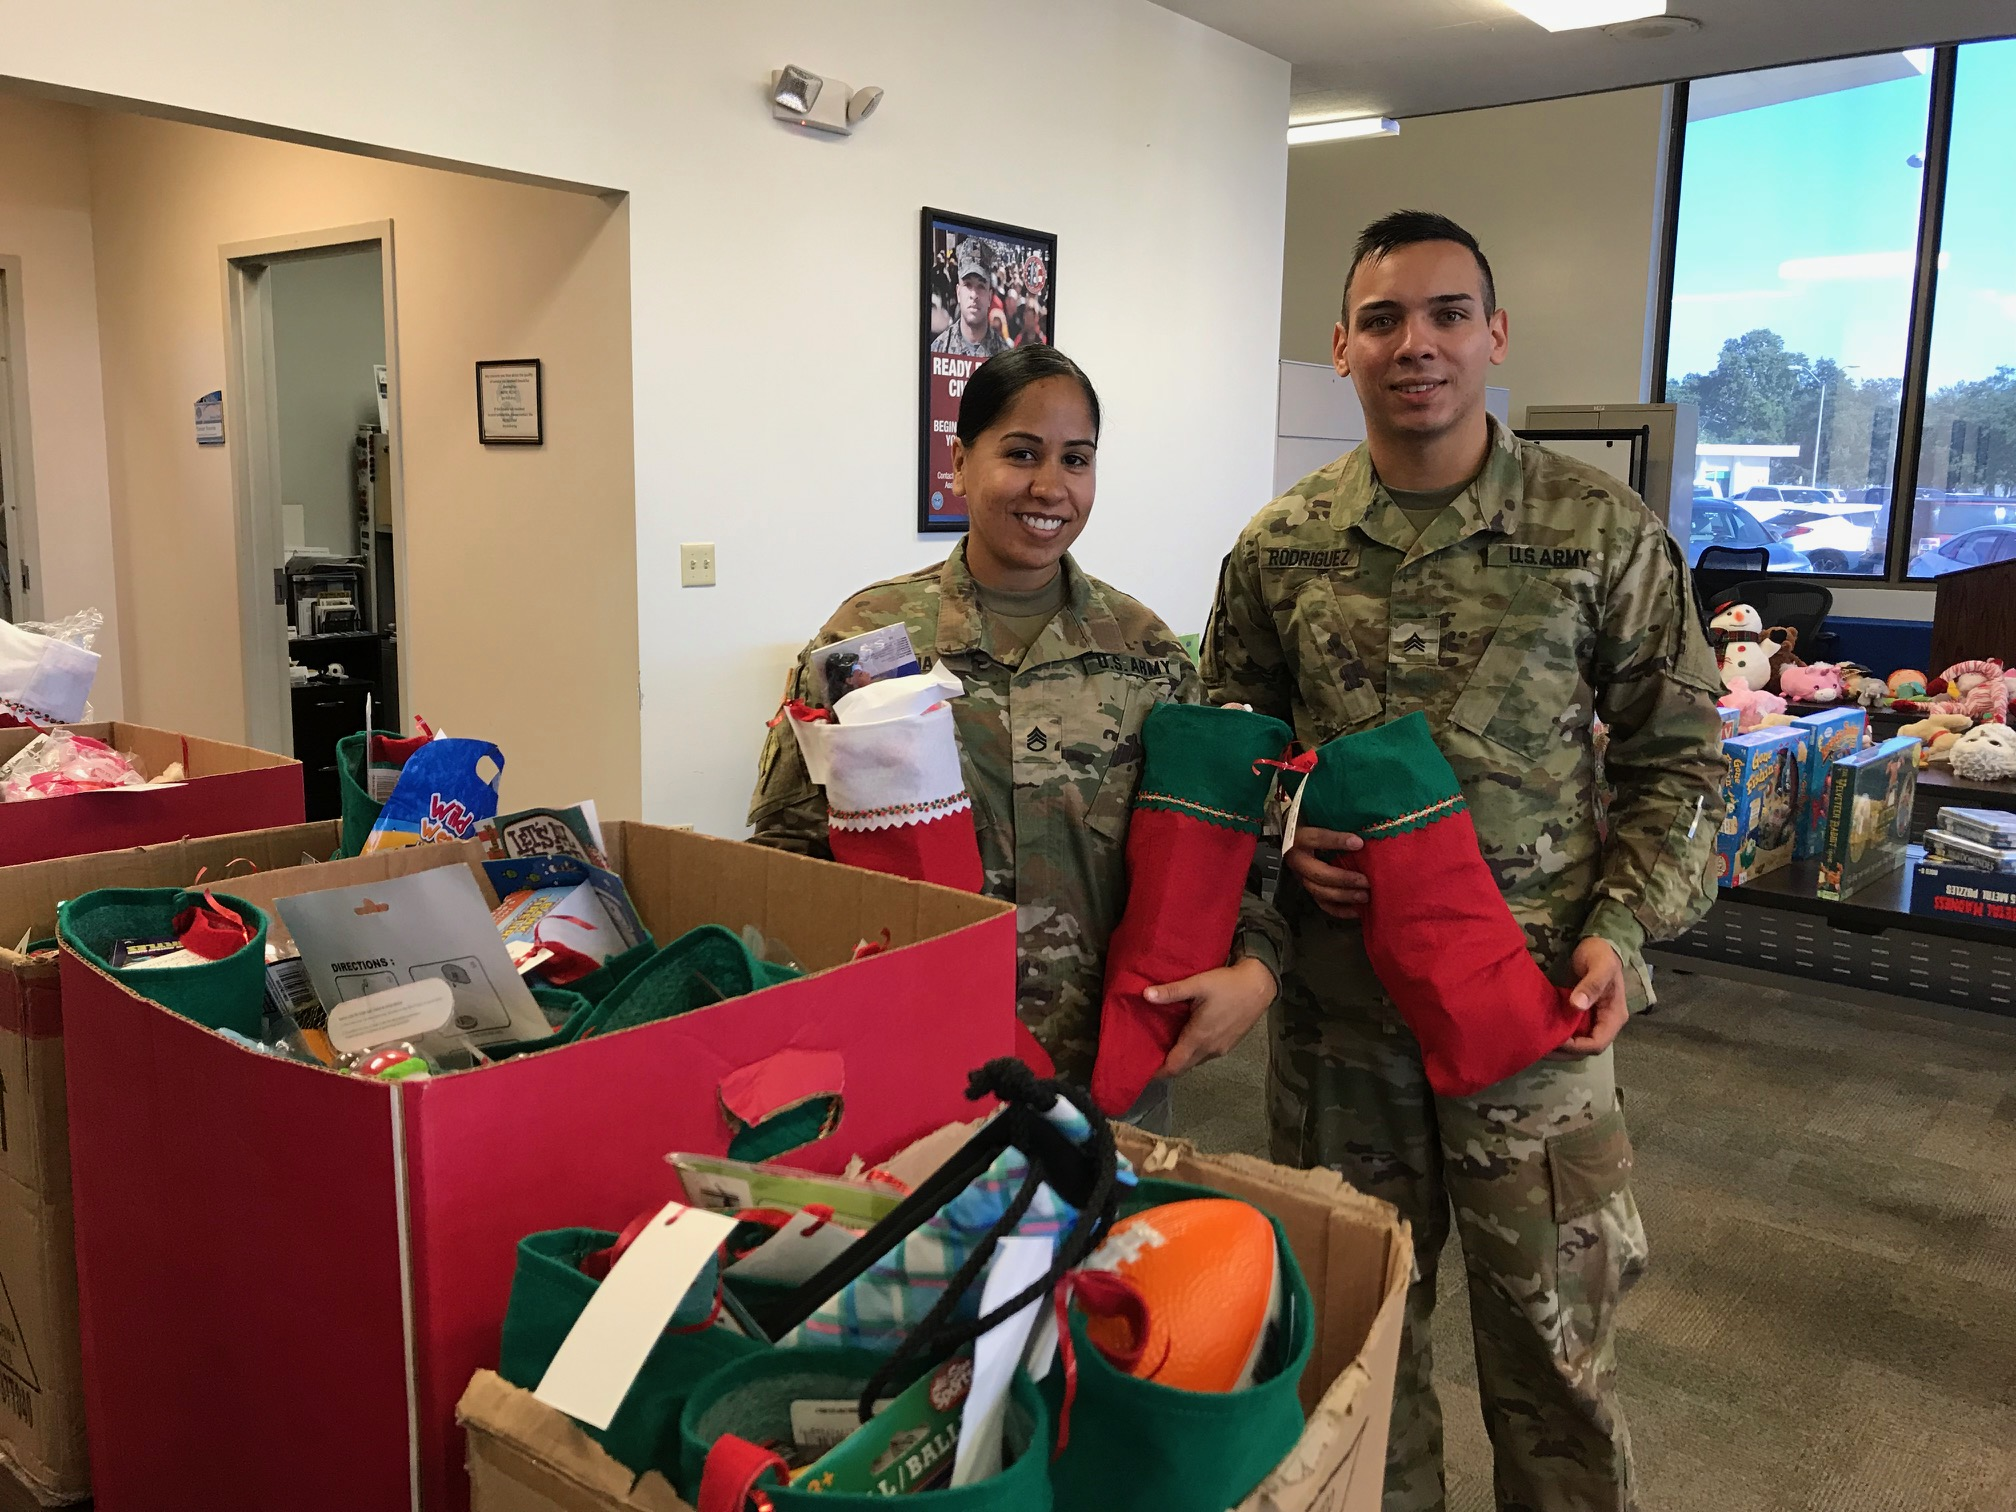 OTS 2017 - MacDill AFB stockings times two